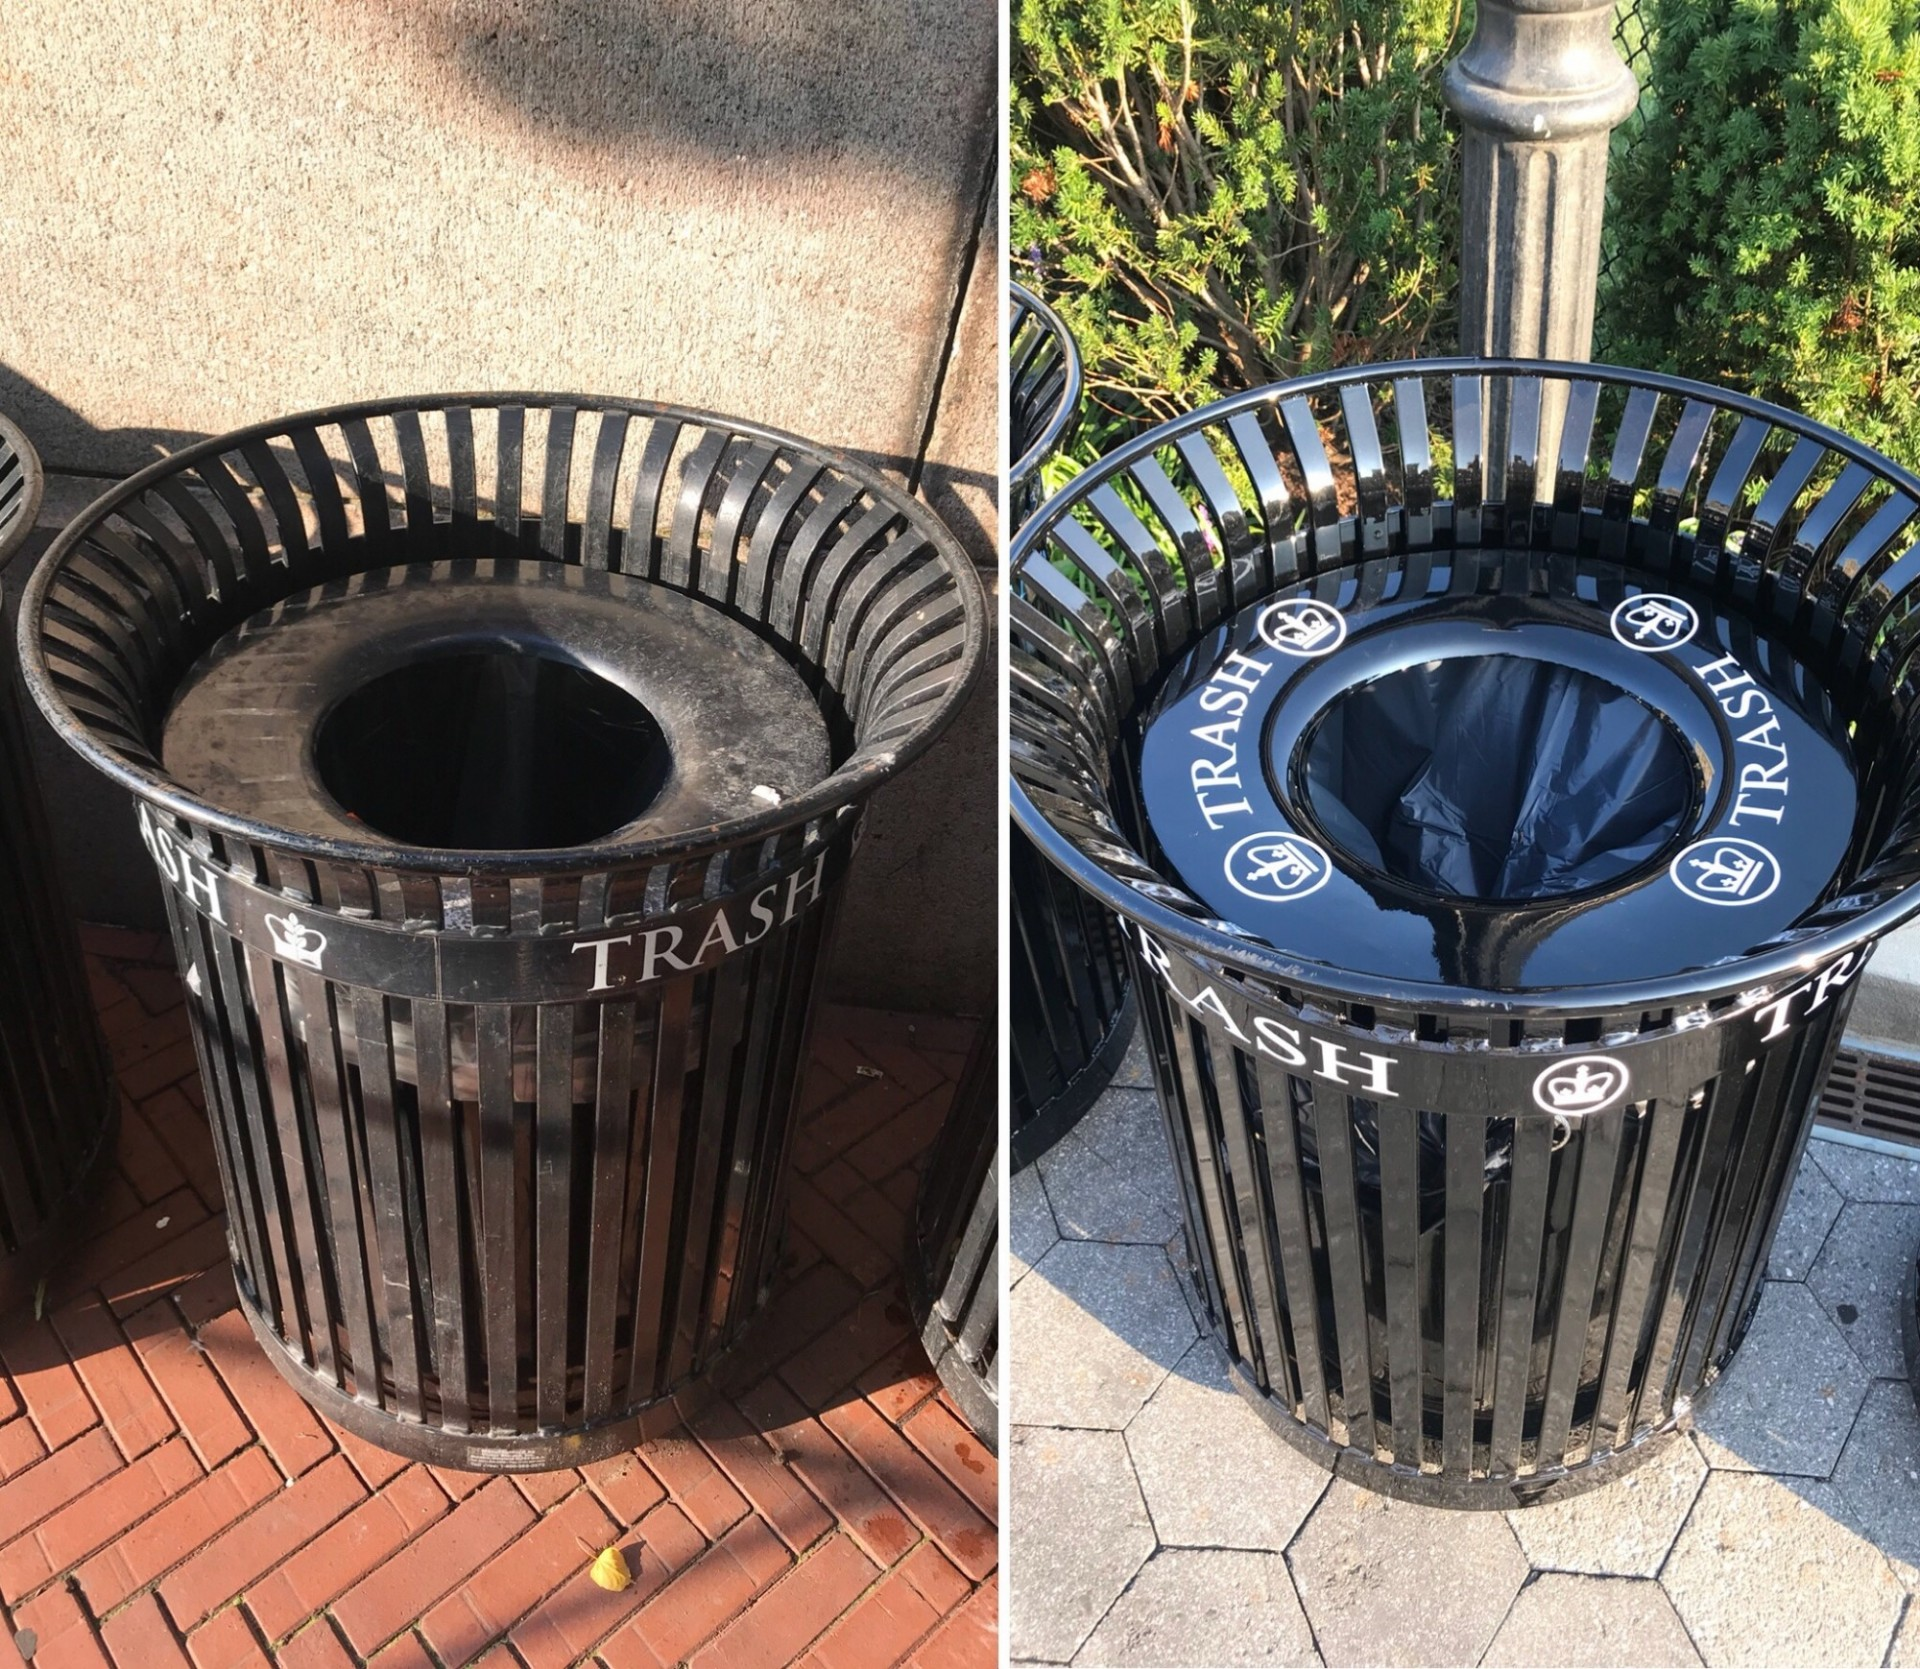 A before and after comparison of trash bins